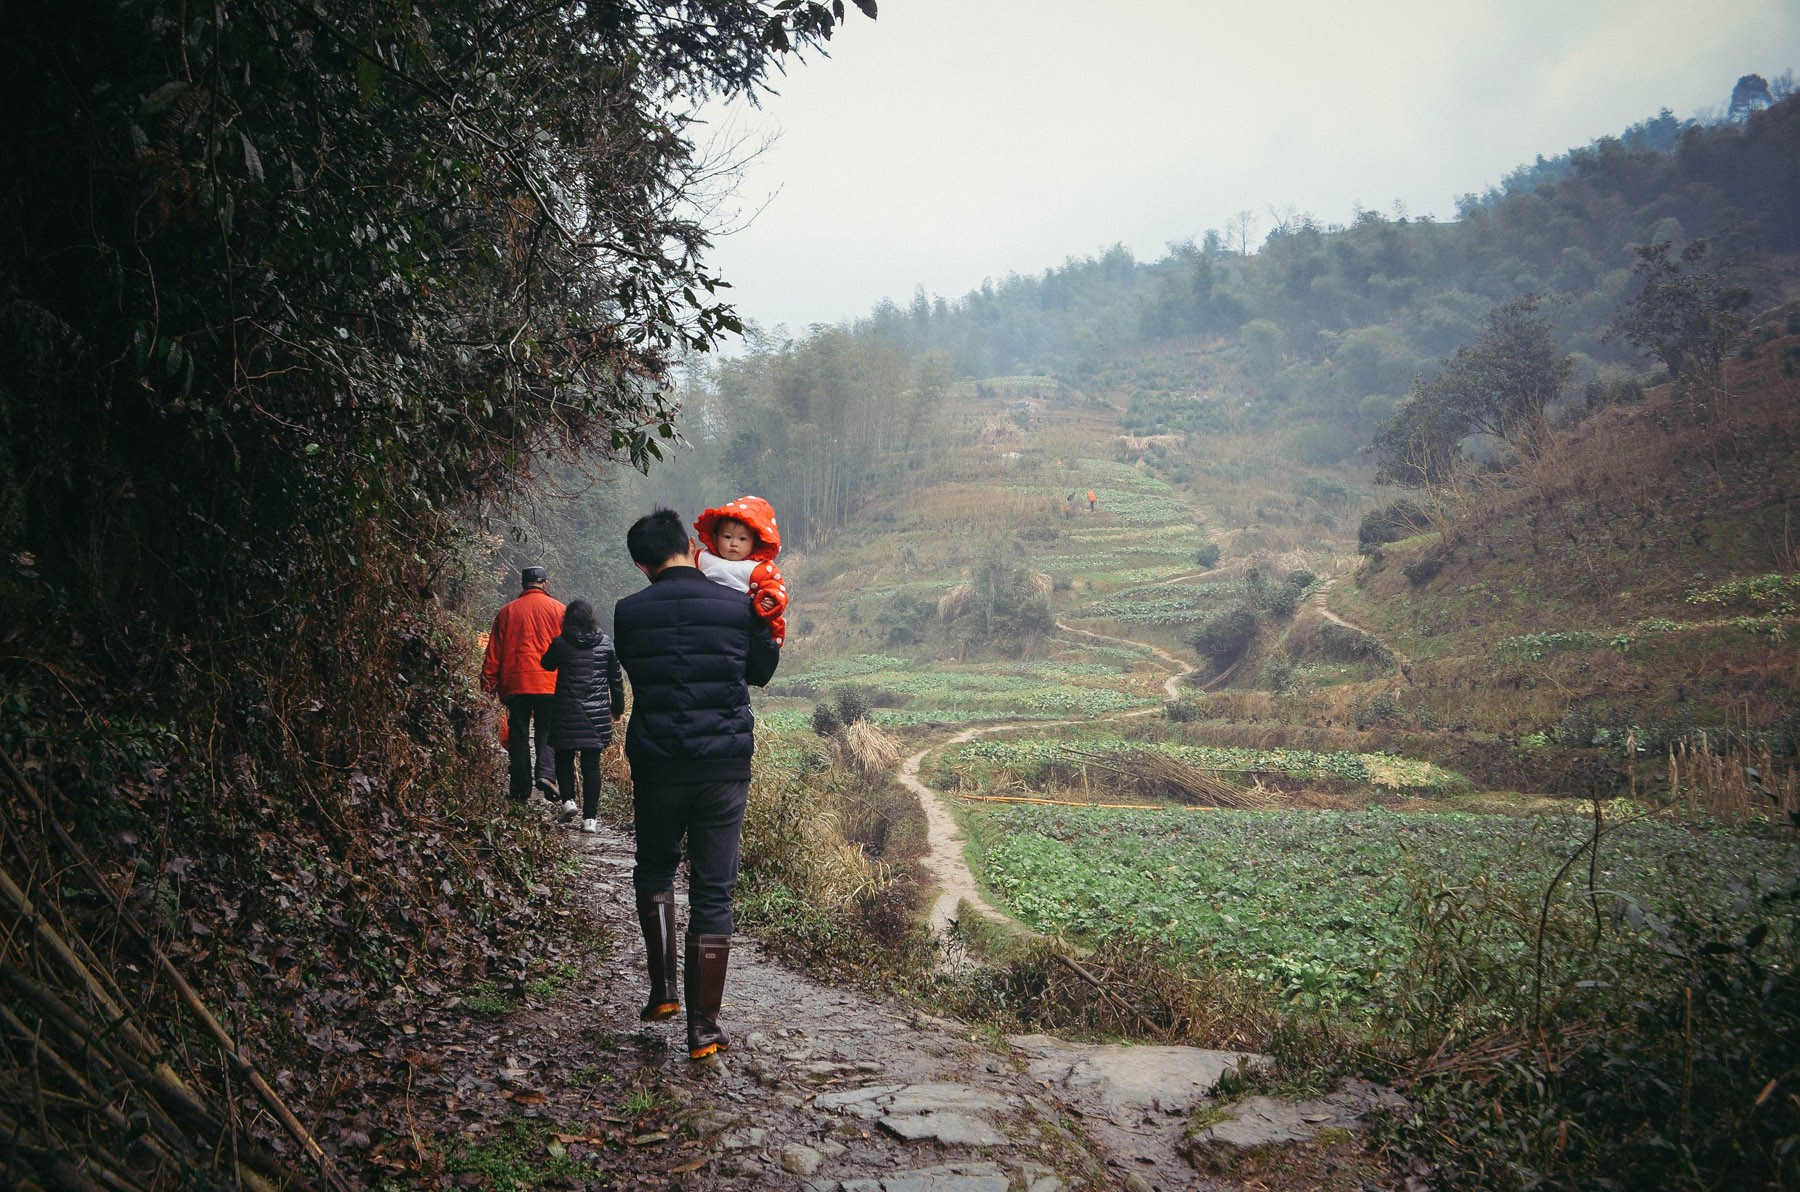 walking-from-sian-village-to-the-farmgravesite_24876850081_o